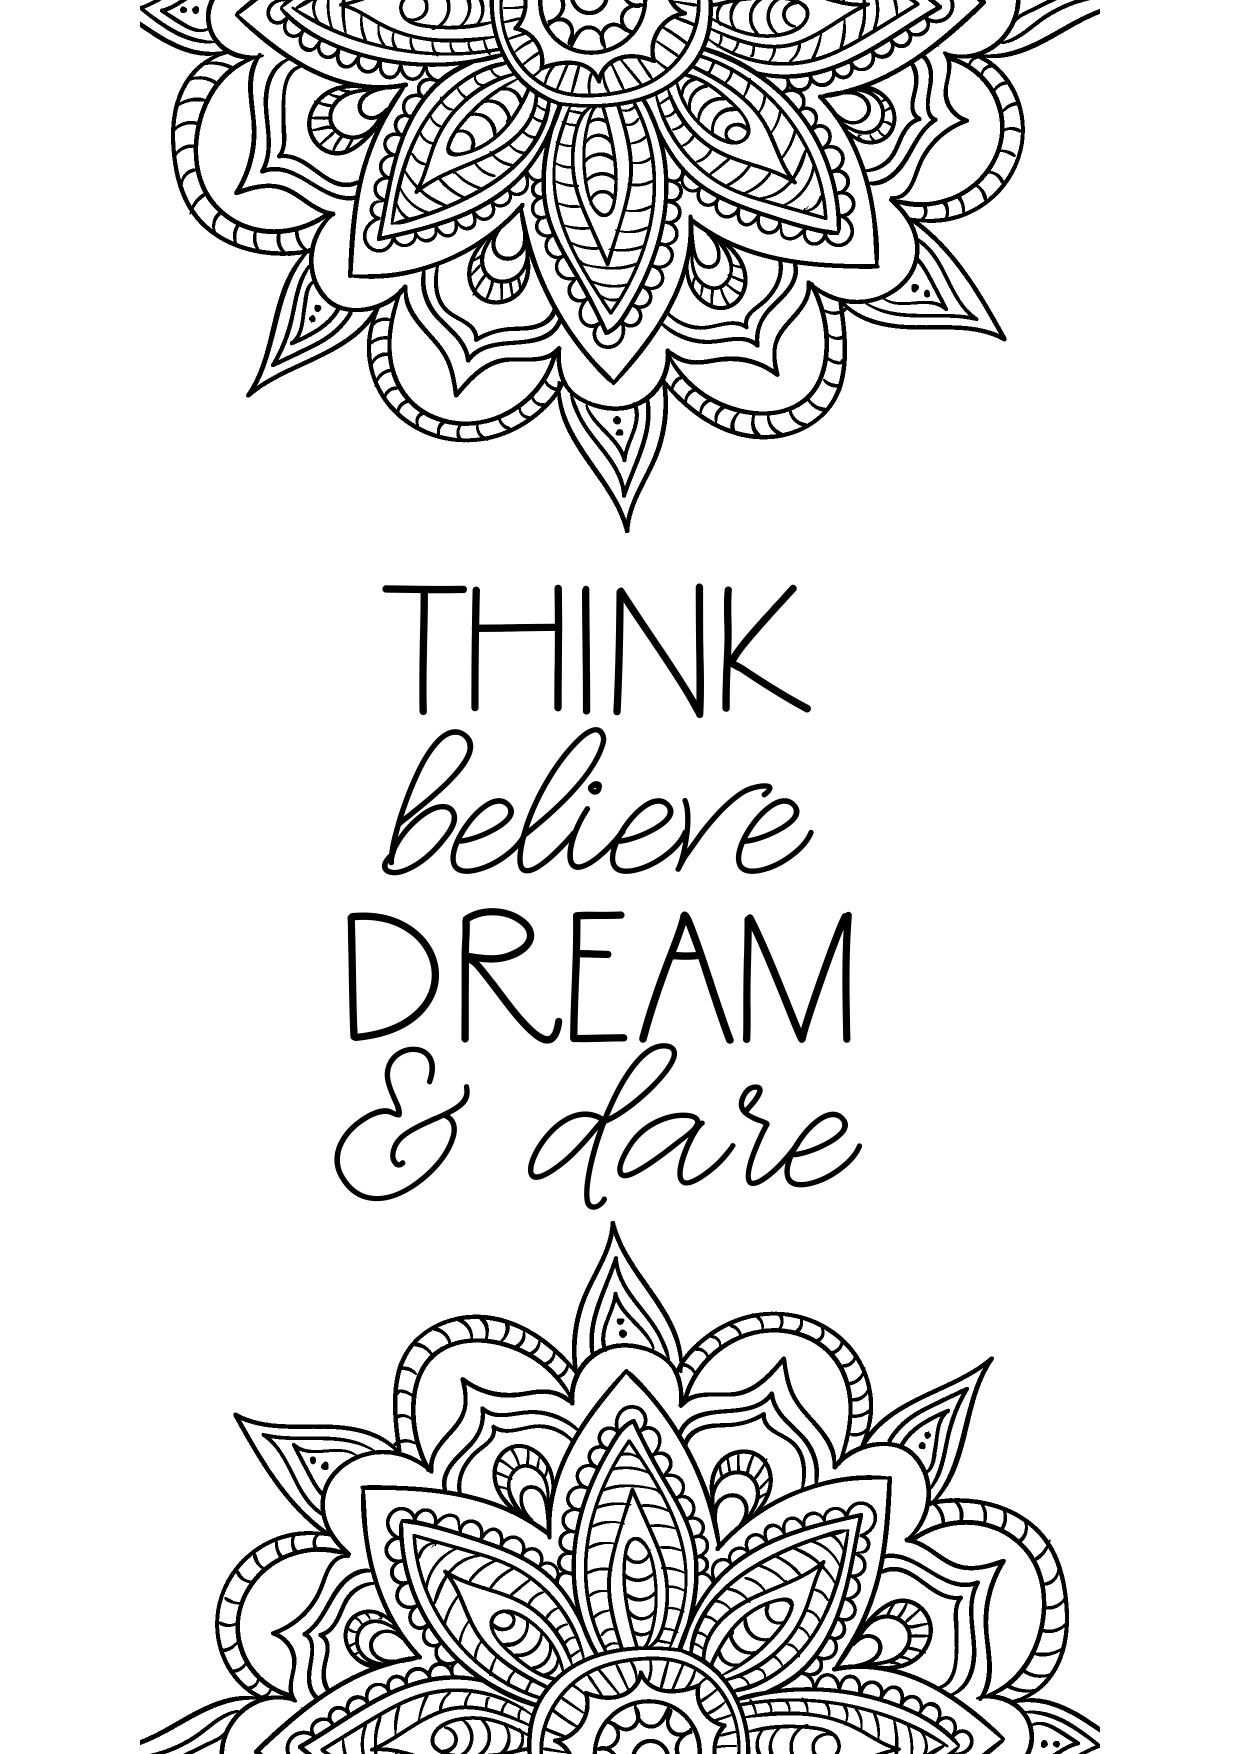 positive quote mandala coloring pages pin by marcia peetz on adult coloring adult coloring positive quote coloring pages mandala